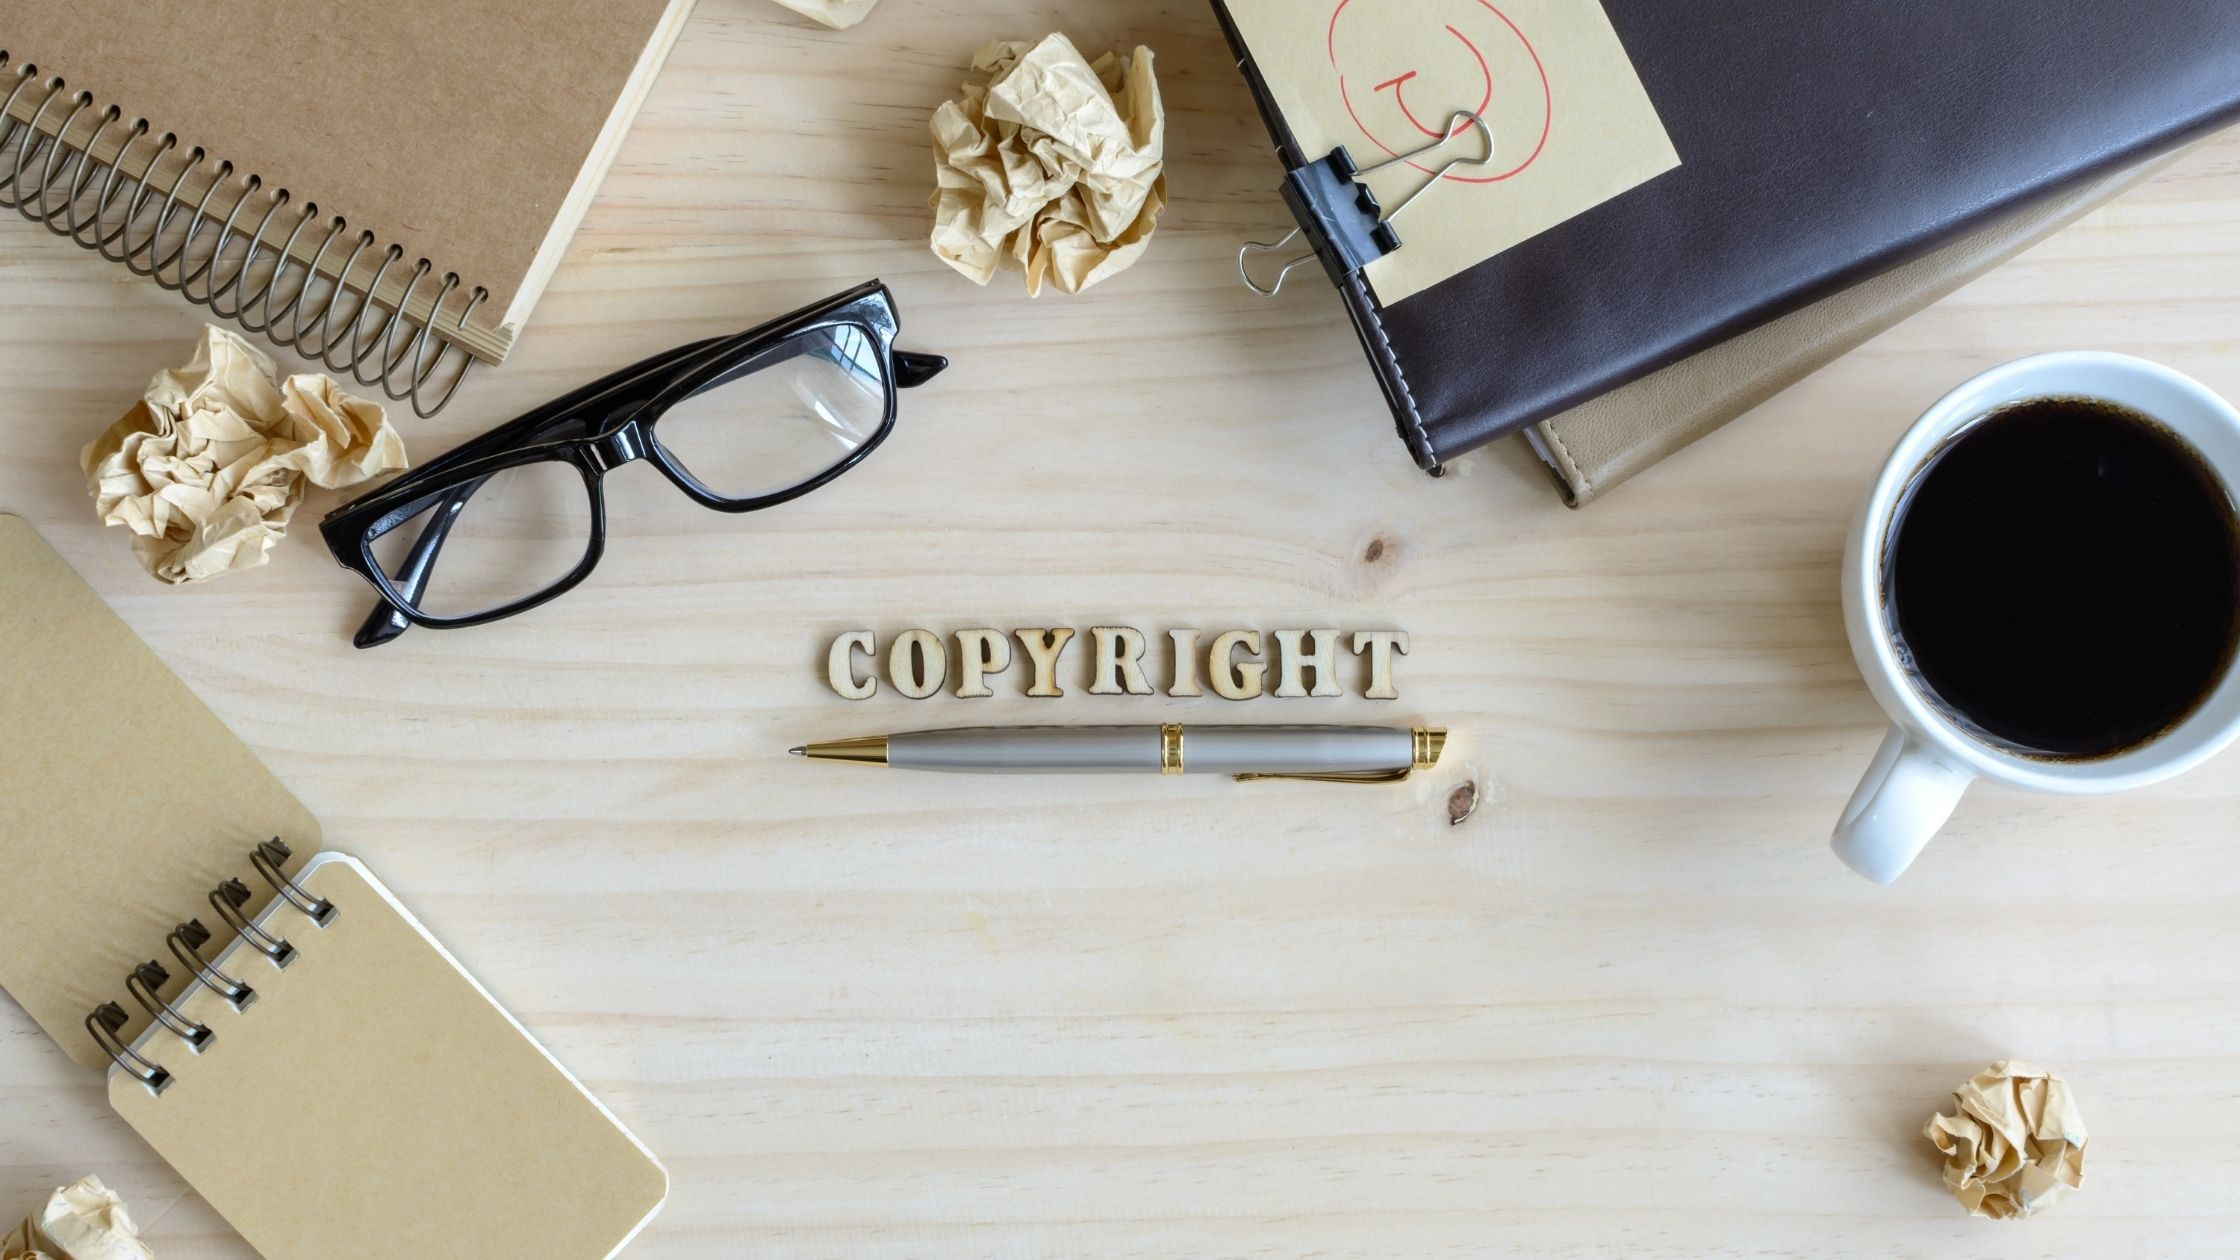 How to Find Copyright